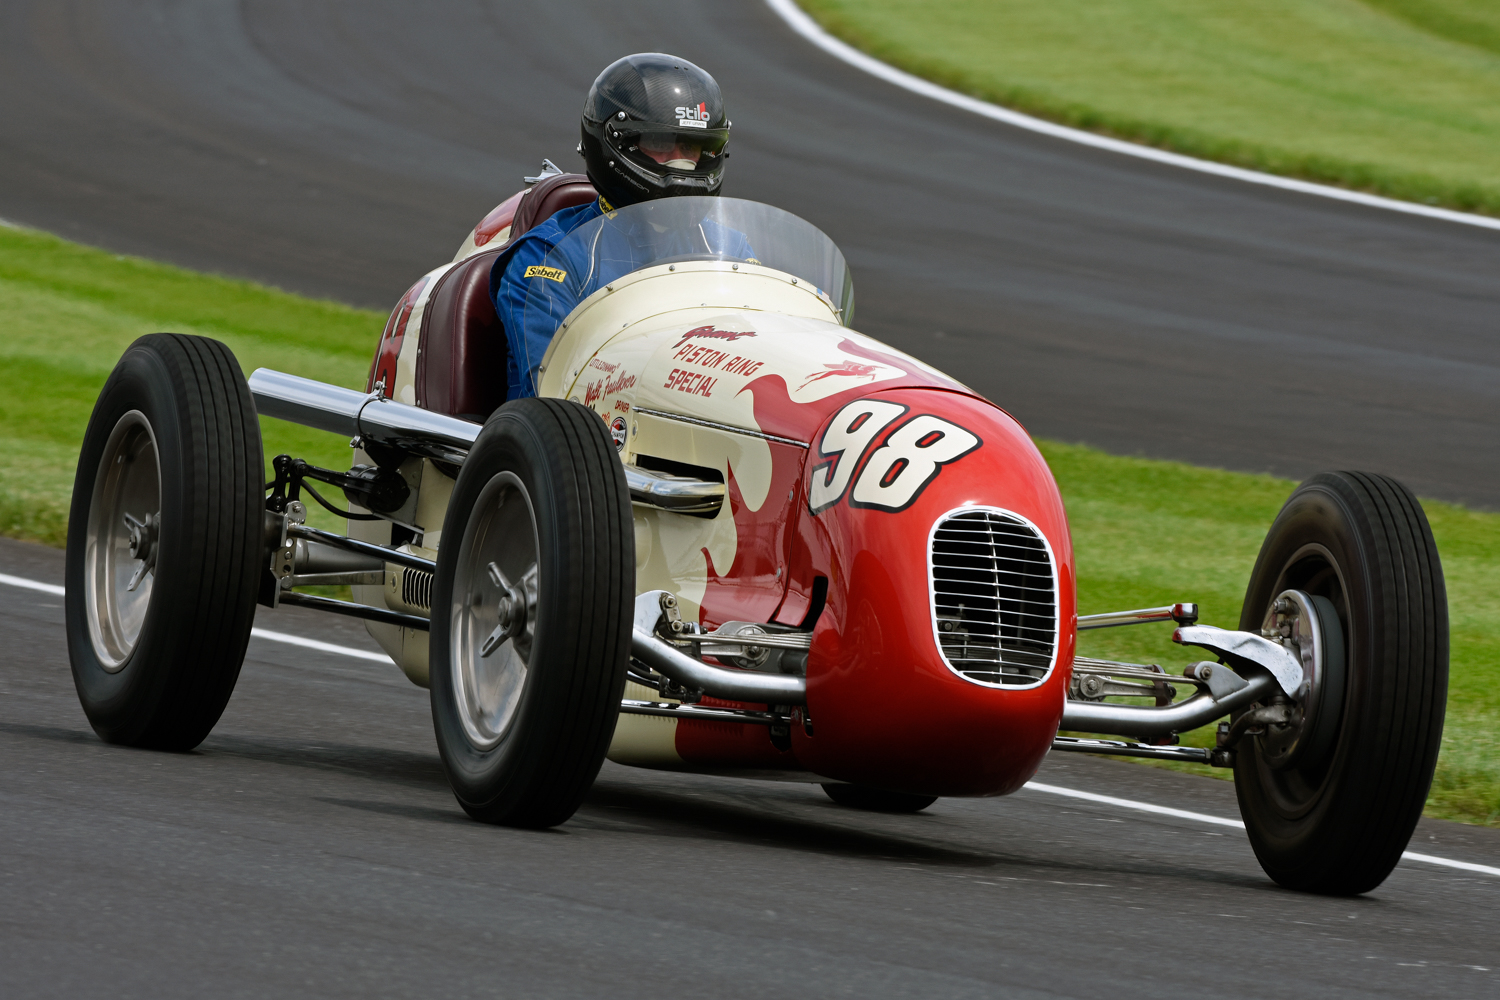 2019 Indianapolis Historic Lapping J. Hatfield